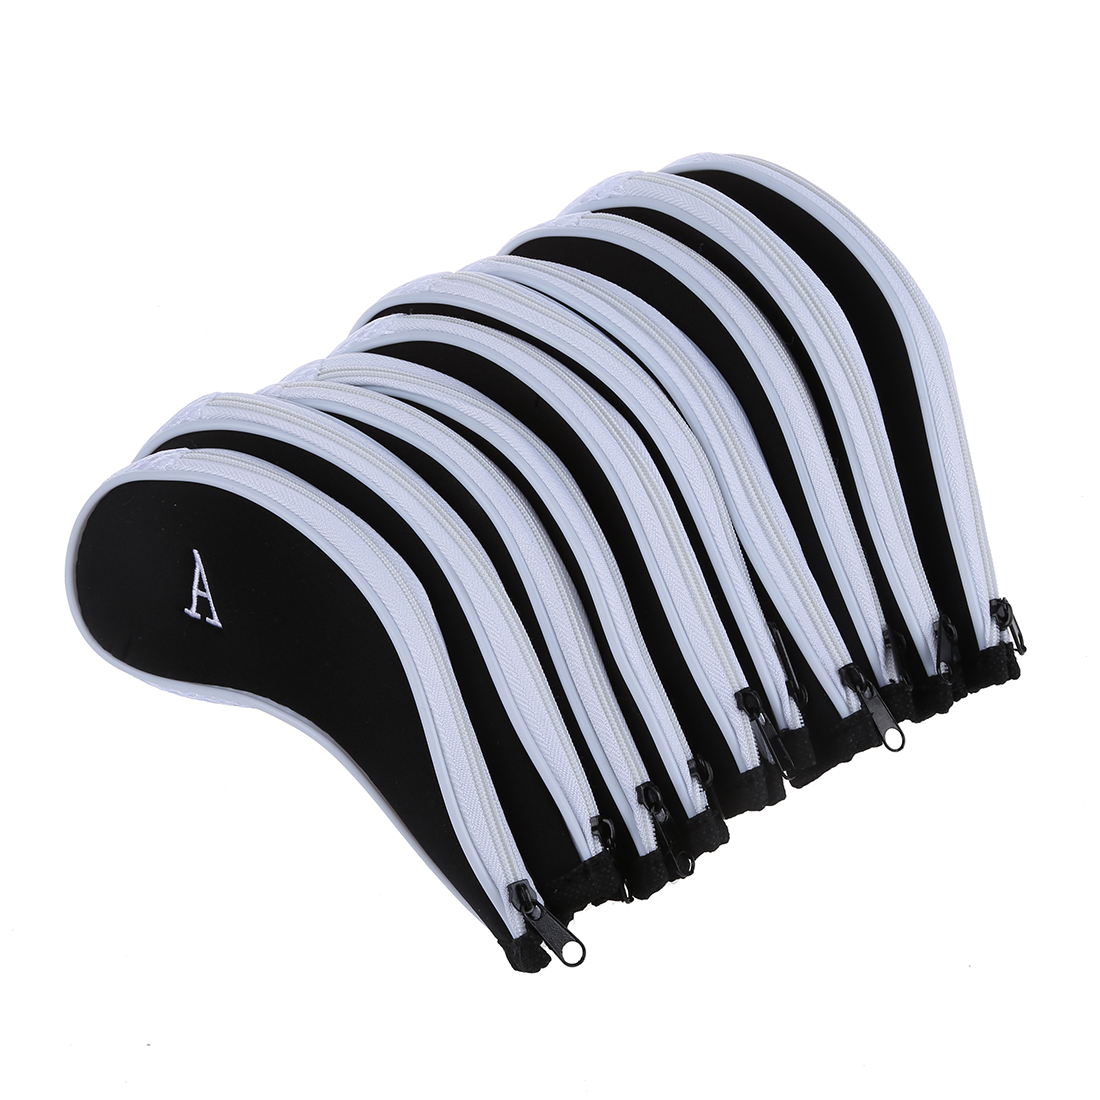 MUMIAN 10 pcs Golf Club Iron Putter Head Cover HeadCovers Protect Set Fit for All Brands and Sizes Iron Golf Club Head White